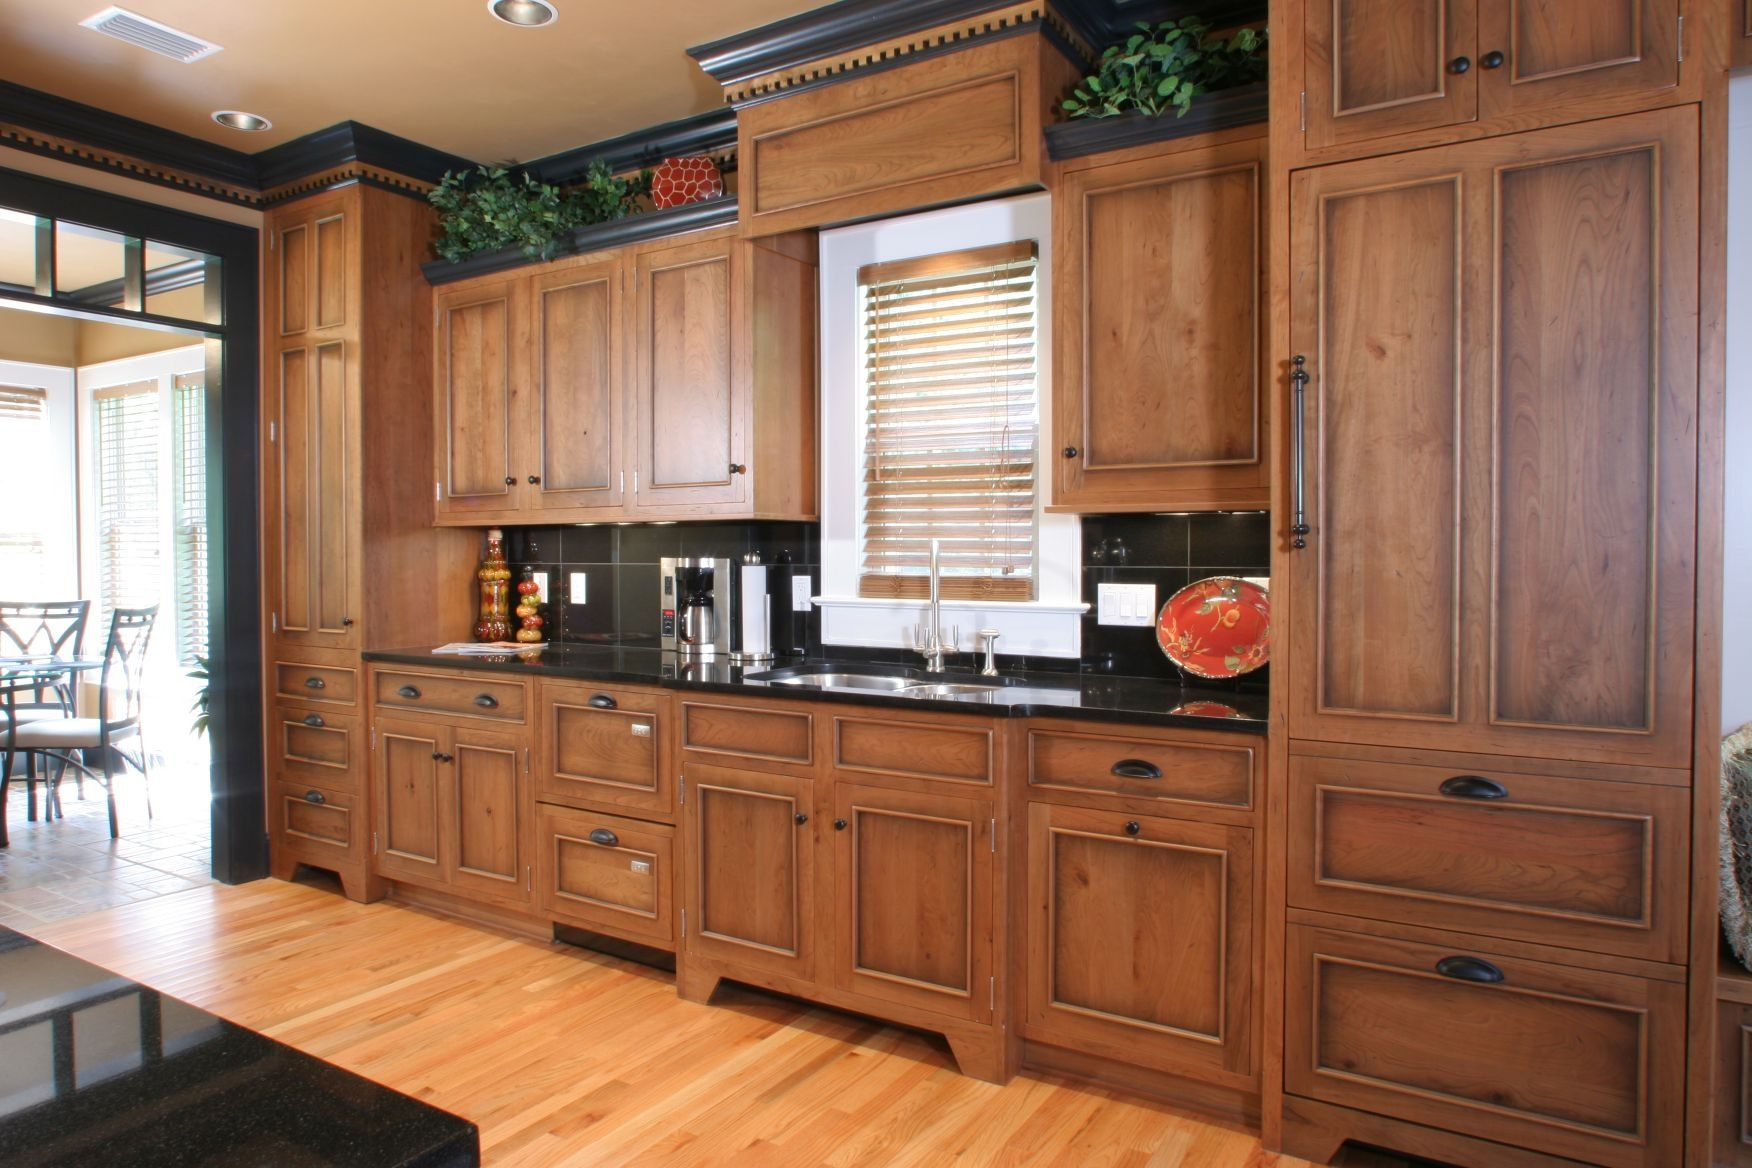 Matching Old Kitchen Cabinet Doors Cupboards Are Just One Of The Fundamental Elements Of Each And Every Kit Oak Kitchen Cabinets Oak Cabinets Kitchen Remodel